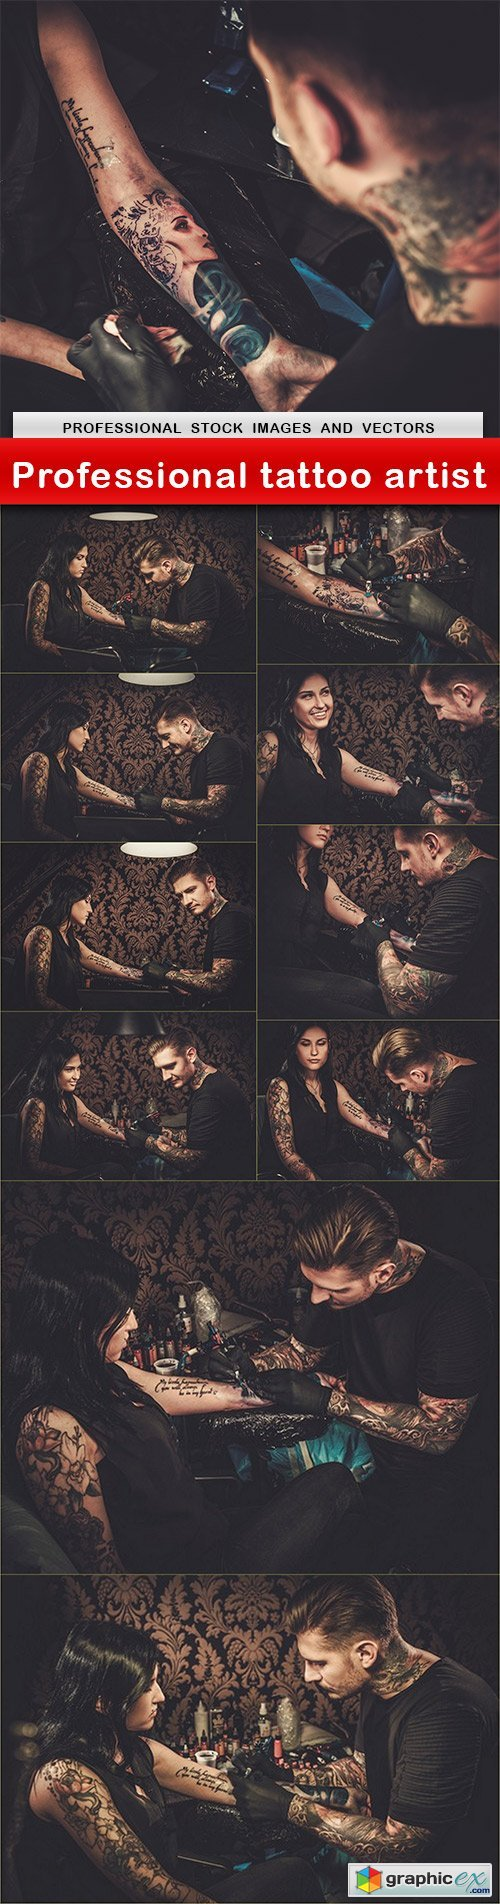 Professional tattoo artist - 11 UHQ JPEG